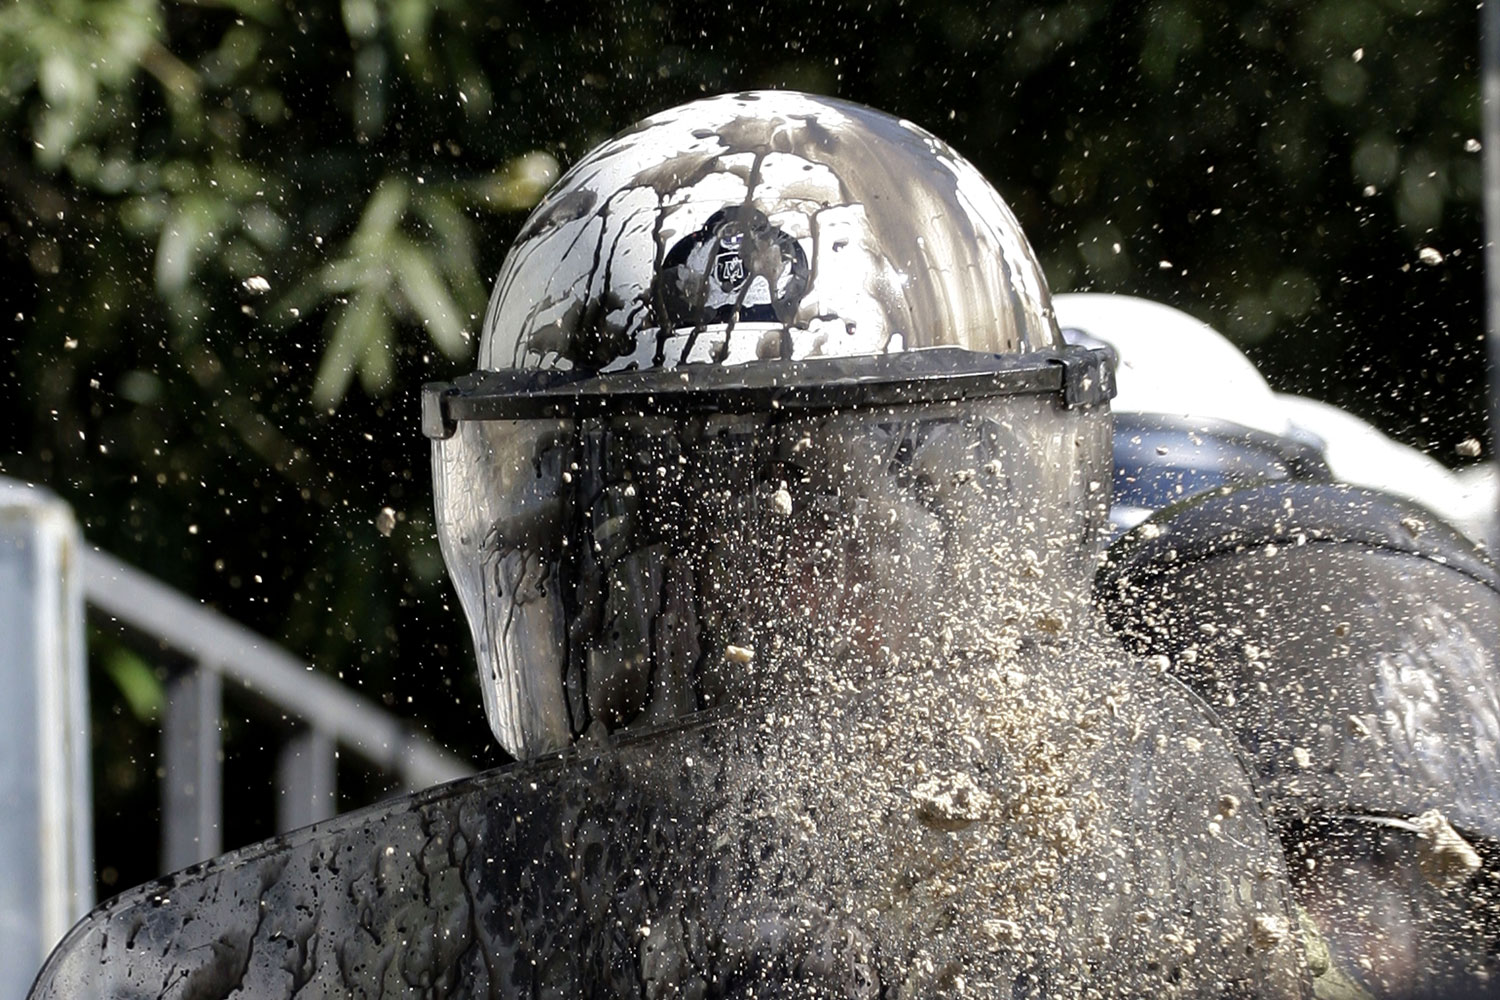 October 19, 2011. A piece of plaster torn from a building and thrown by a protester shatters as it hits the paint-spattered helmet of a riot policeman, during clashes in central Athens. Greek anger over new austerity measures and layoffs erupted into violence, as demonstrators hurled chunks of marble and gasoline bombs and riot police responded with tear gas and stun grenades that echoed across Athens' main square.